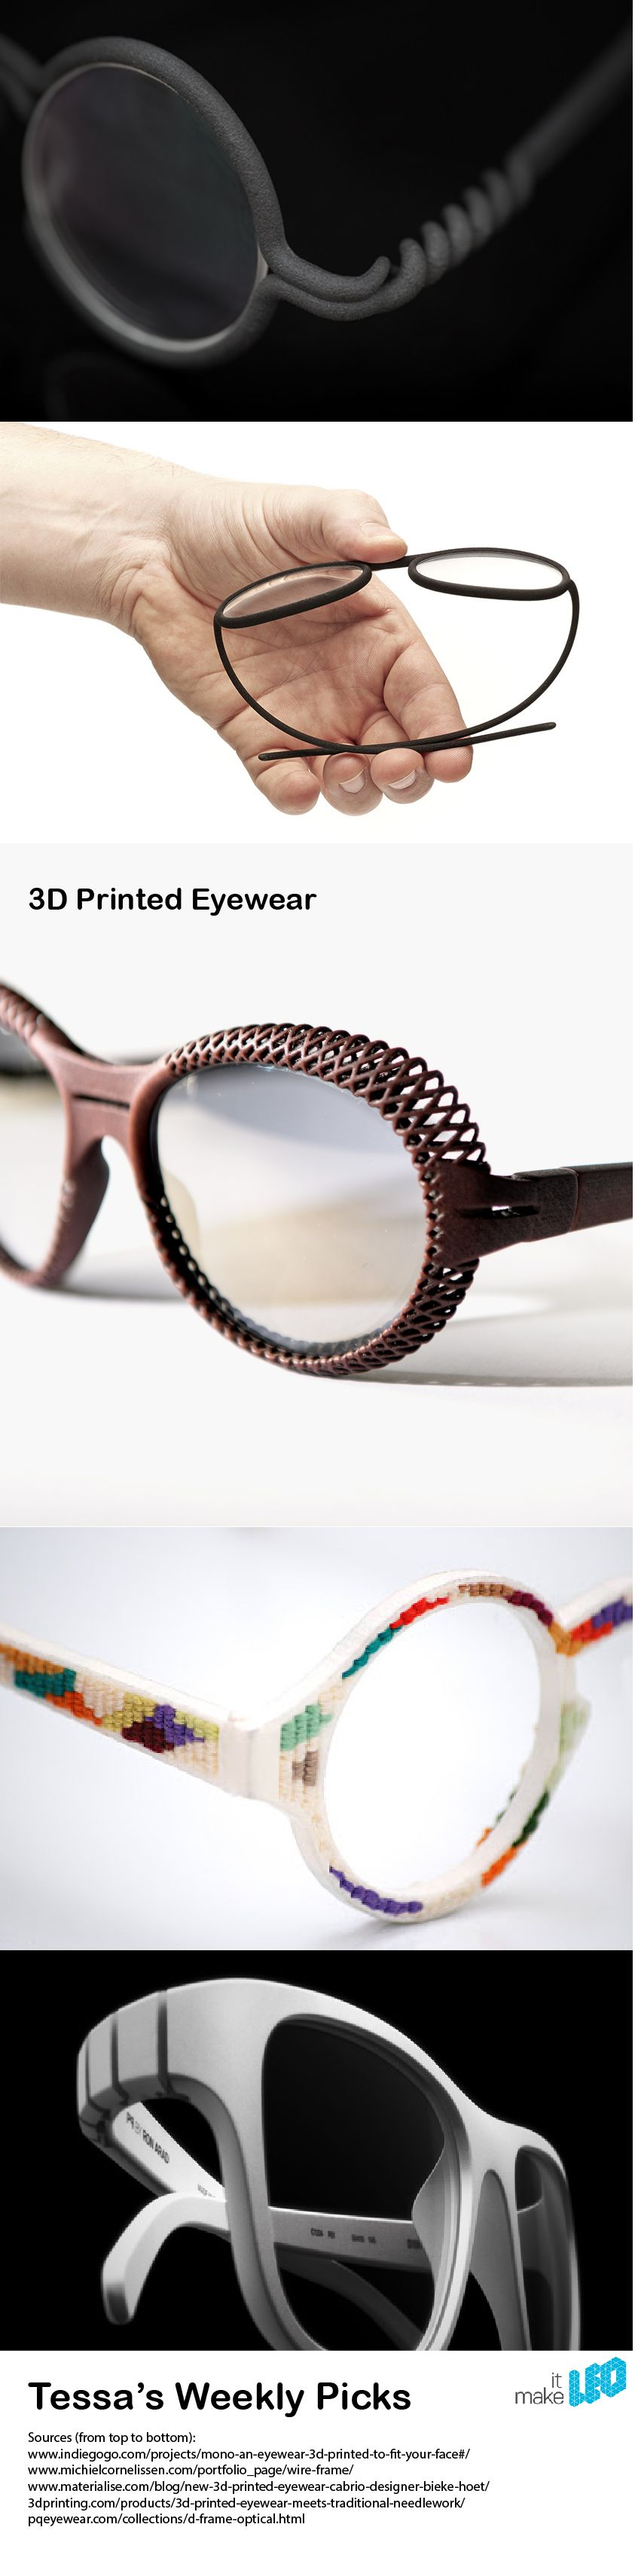 3D Printed Eyewear Designs - Tessa's Weekly Picks - Make it LEO